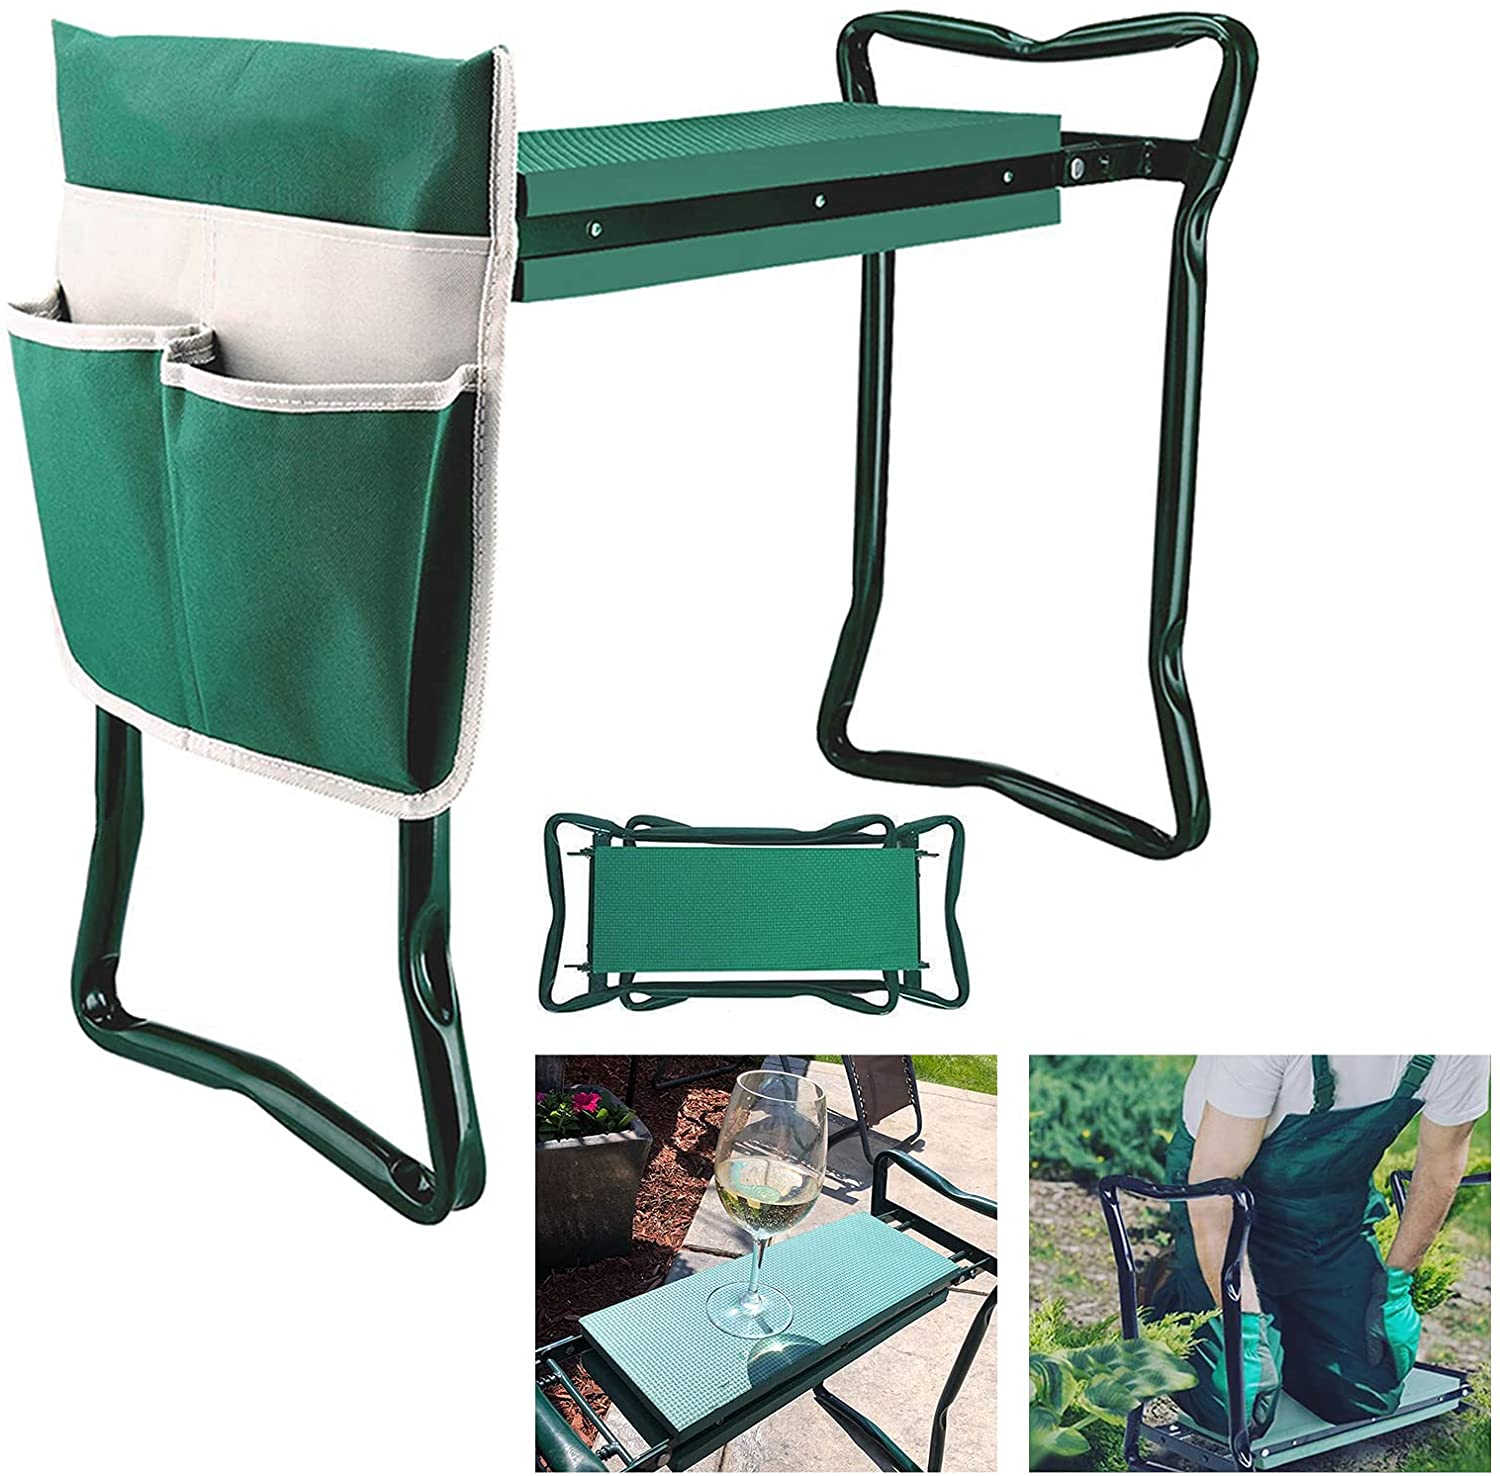 Garden Kneeler Seat with Upgraded Thicken Kneeling Pad and 1 Large Tool Pouch, Foldable Stool 330lb Capacity-Protects Your Knees, Clothes from Dirt & Grass Stains by BDL